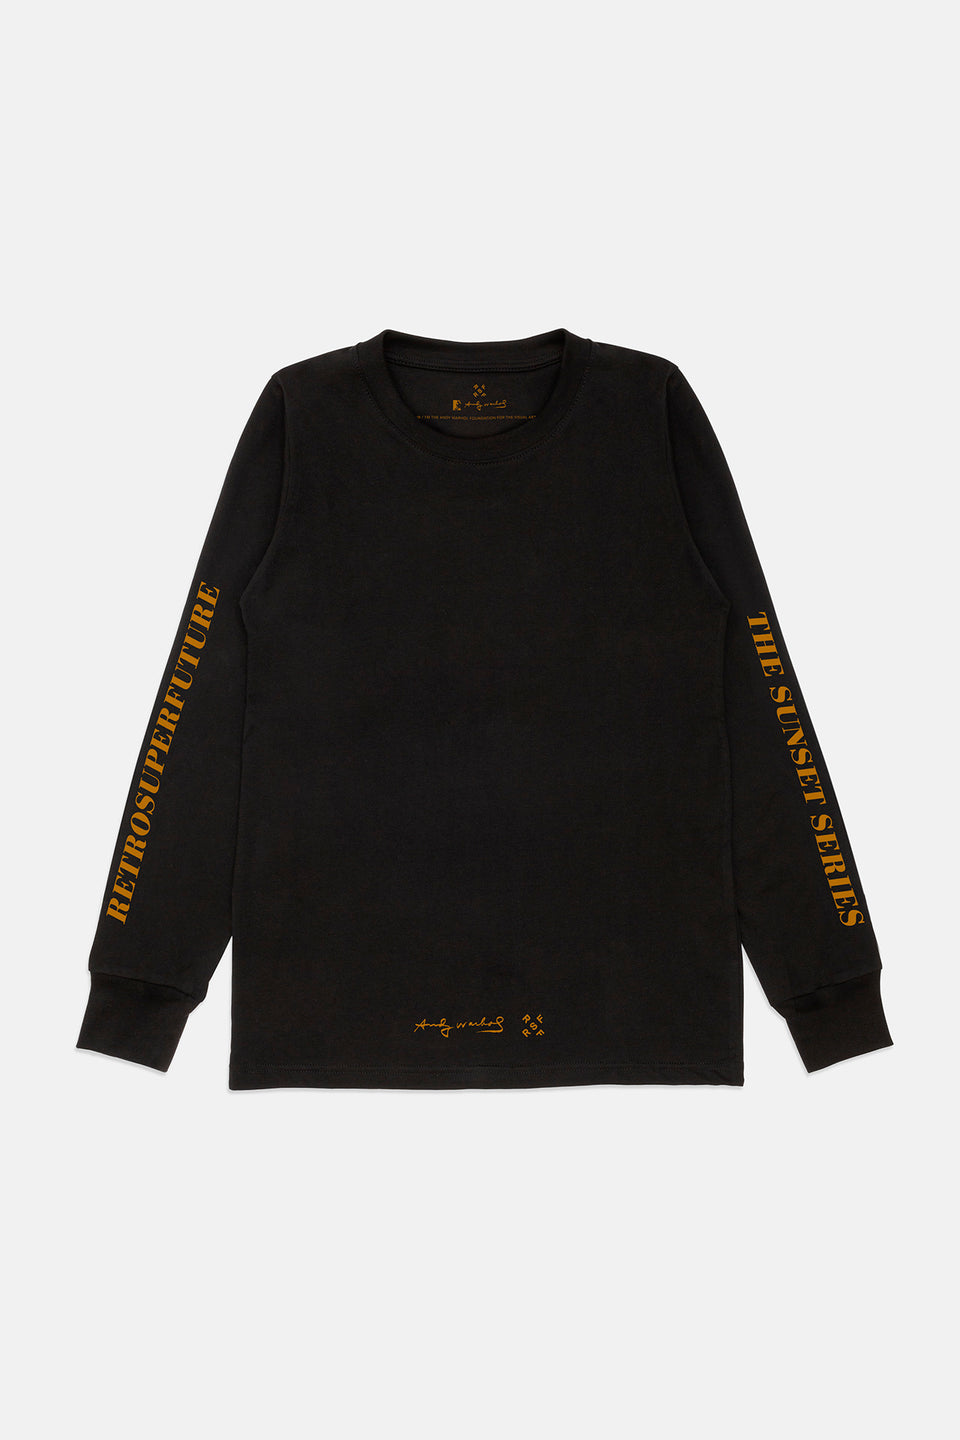 AW Longsleeve Black Yellow